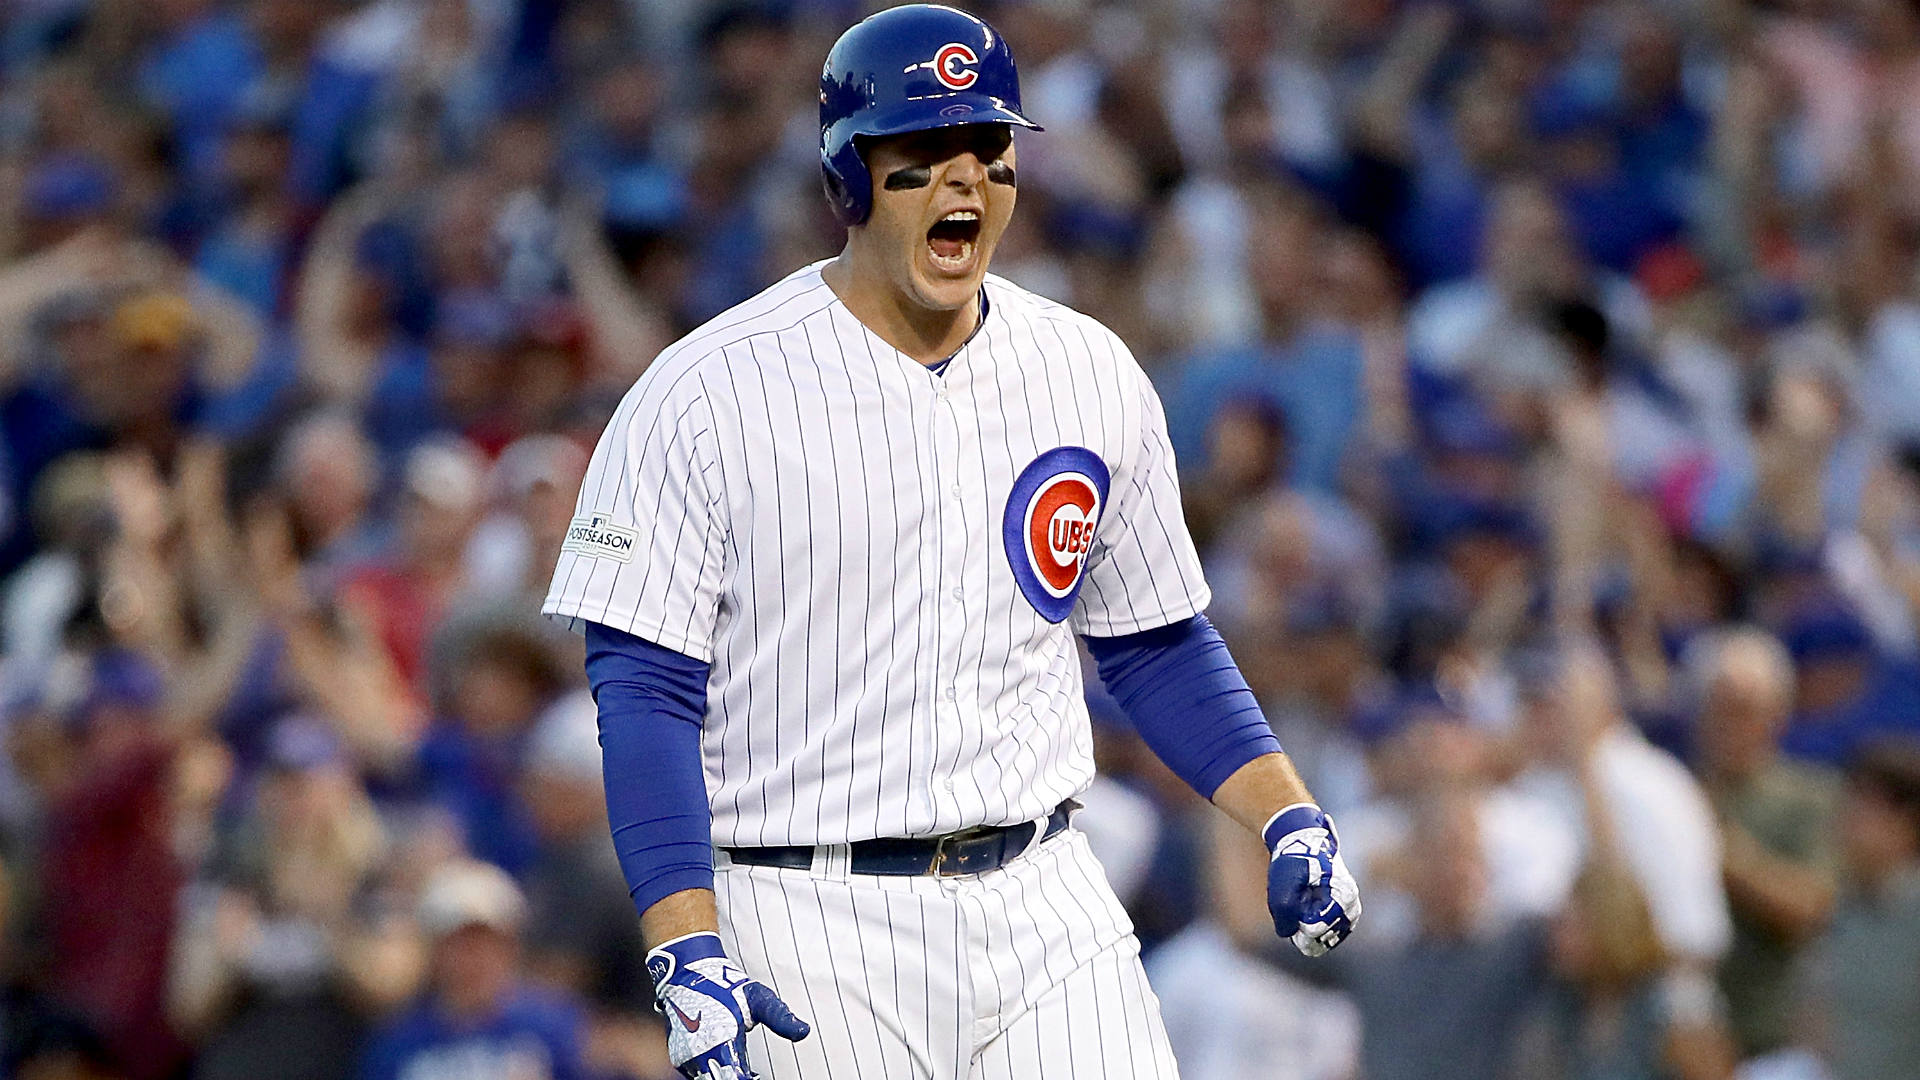 Cubs' Anthony Rizzo Screams 'Respect Me' After Winning Hit